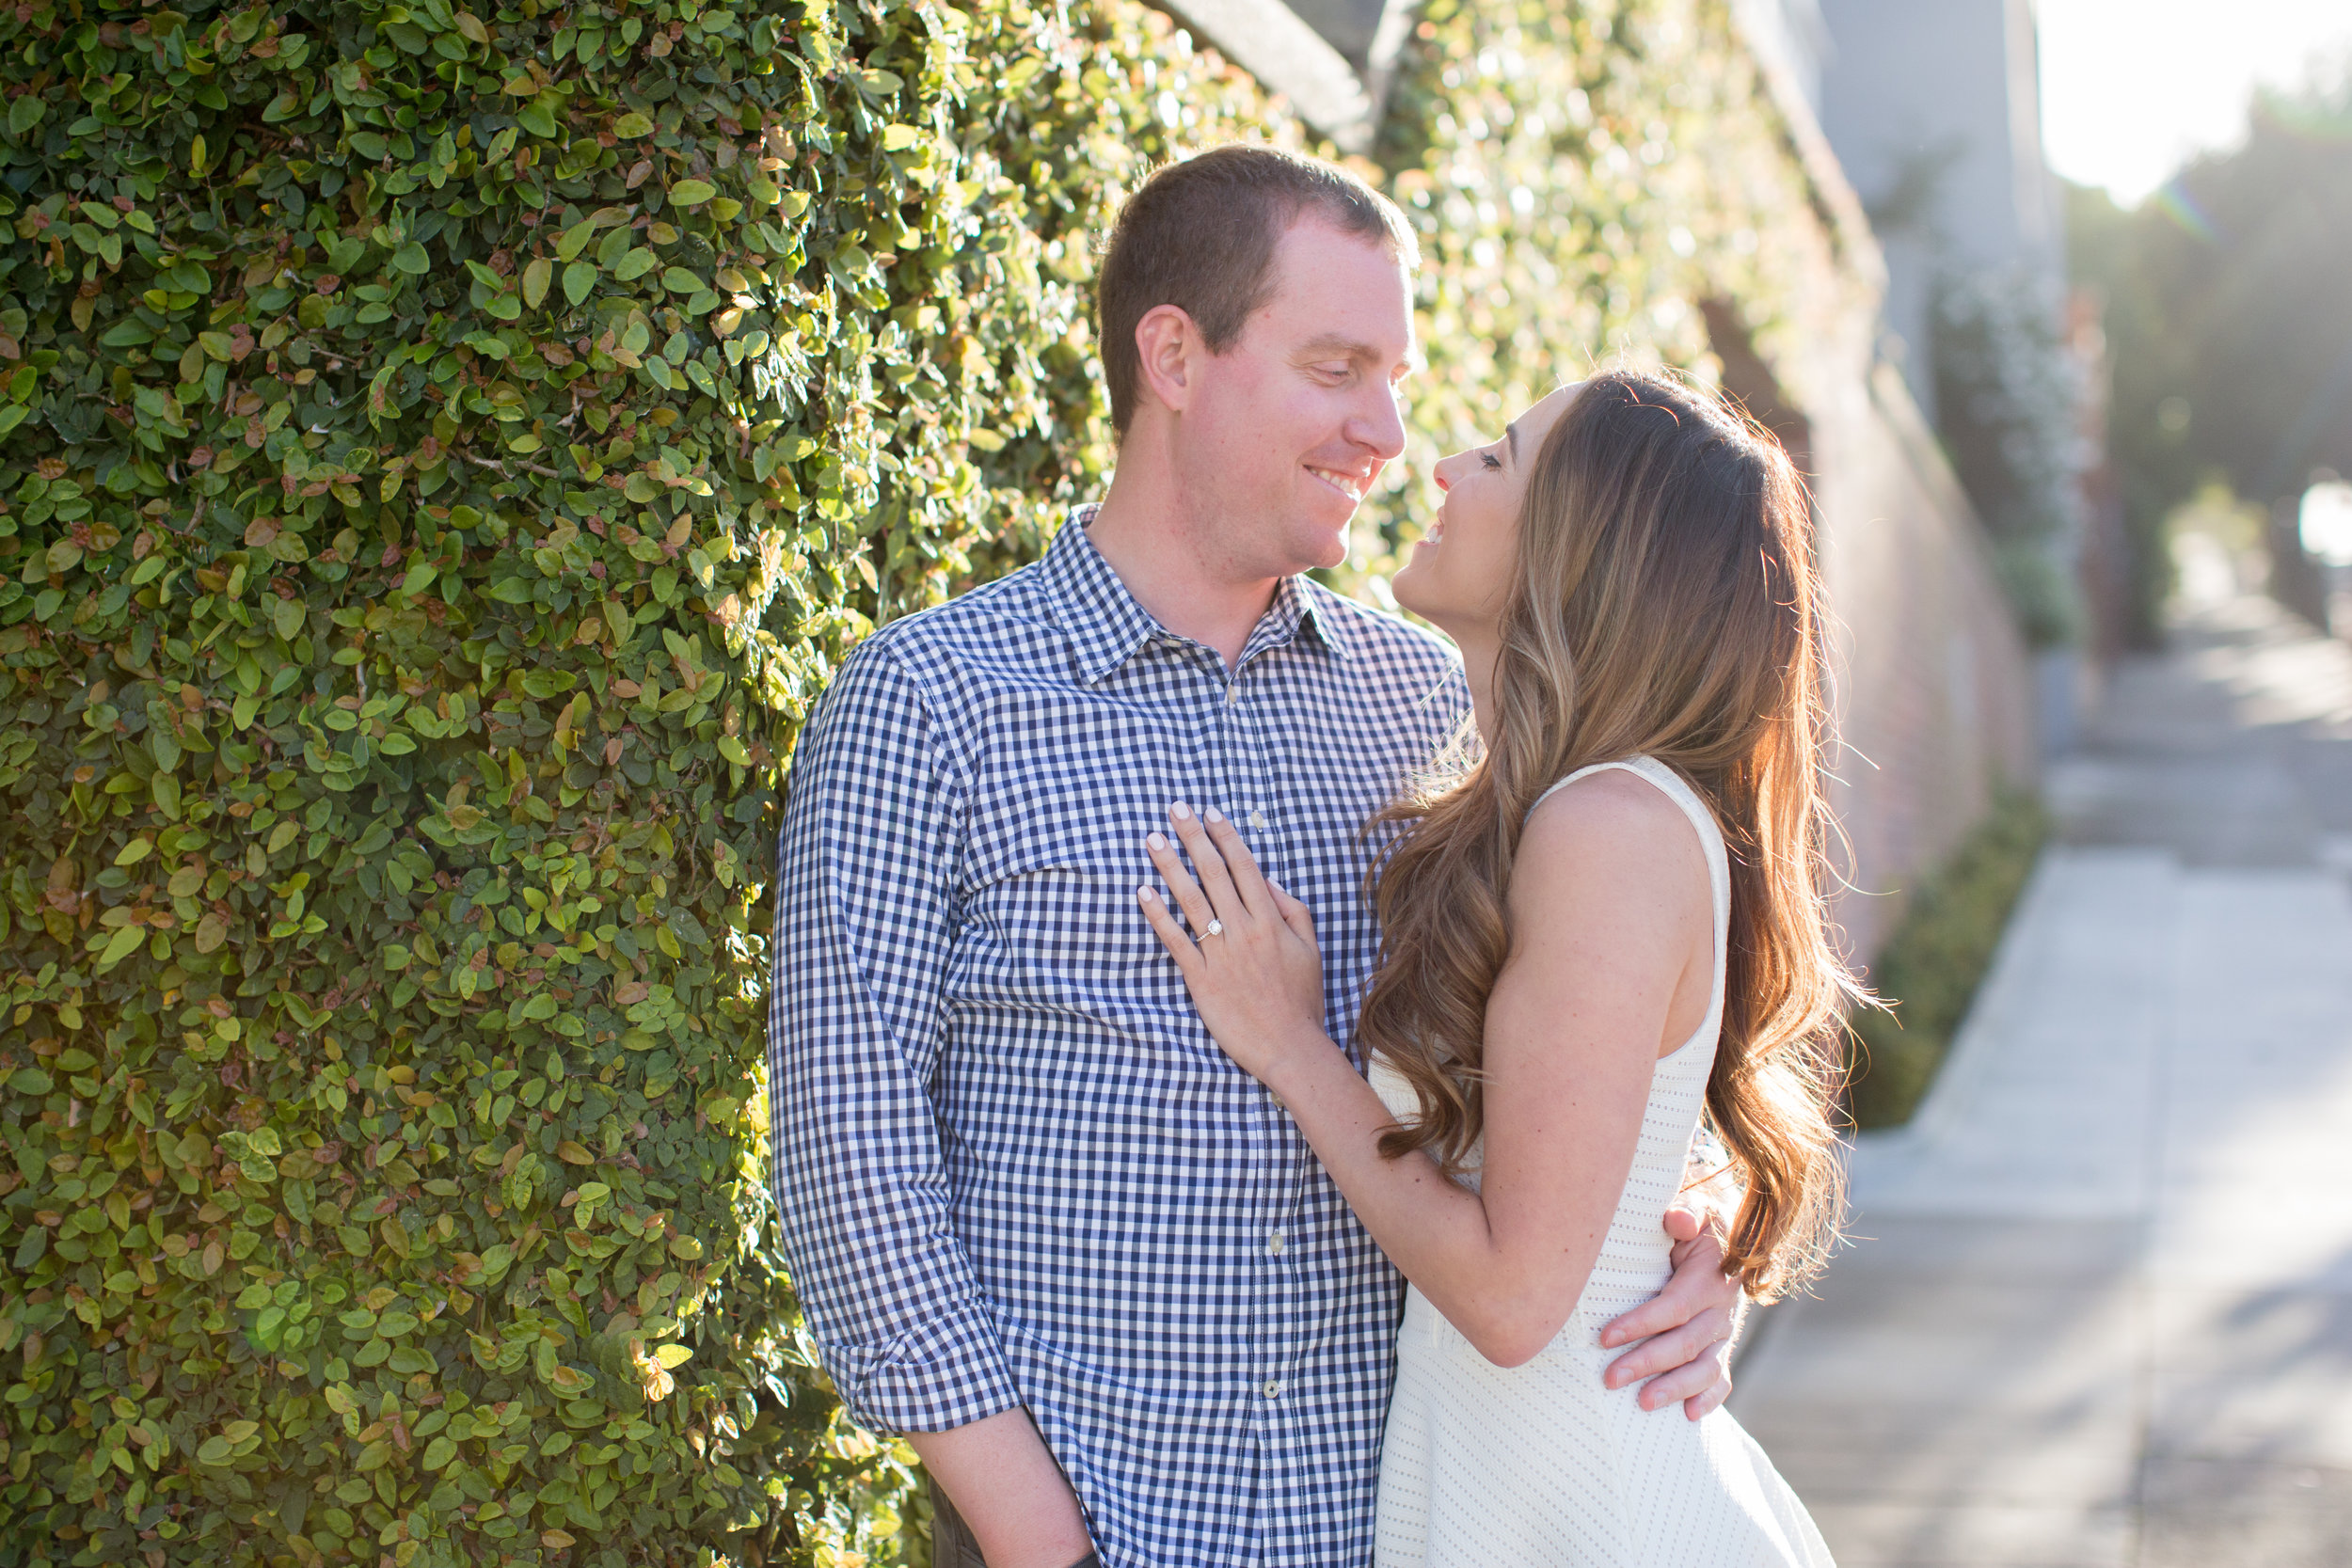 2017_04_14_ginaandkeith_engagementsession_075.jpg